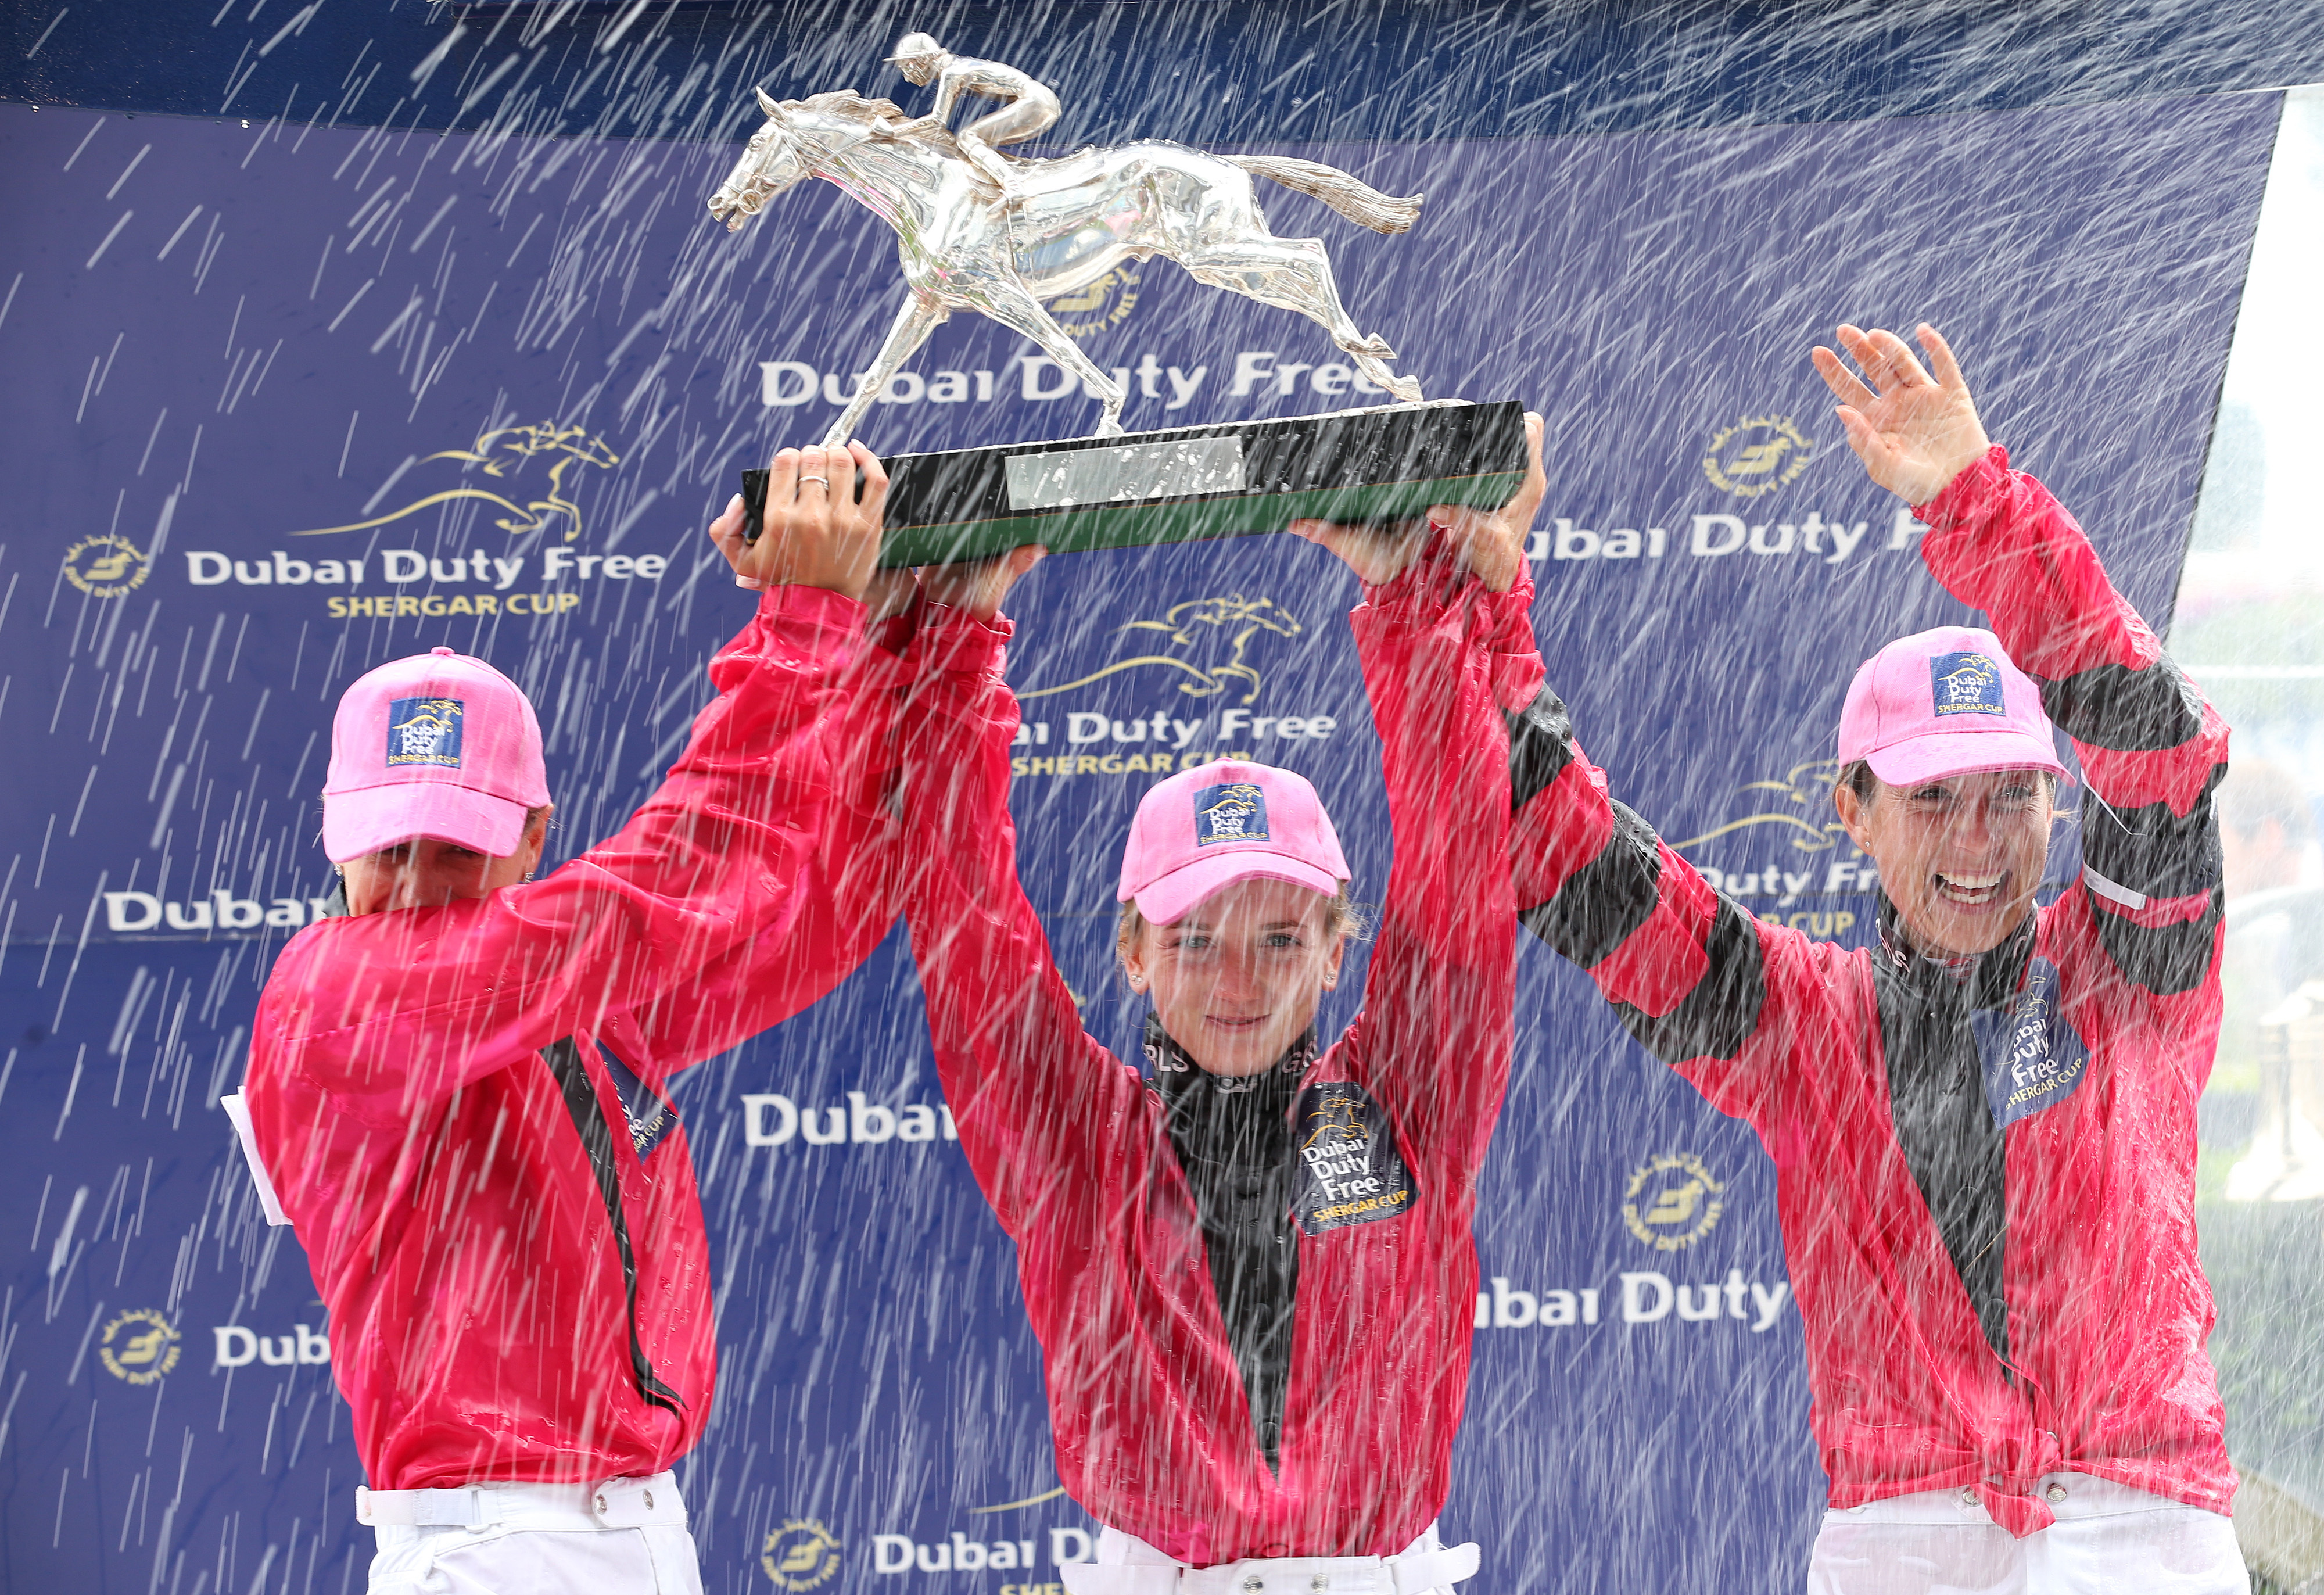 The Girls are the defending champions in this year's Shergar Cup